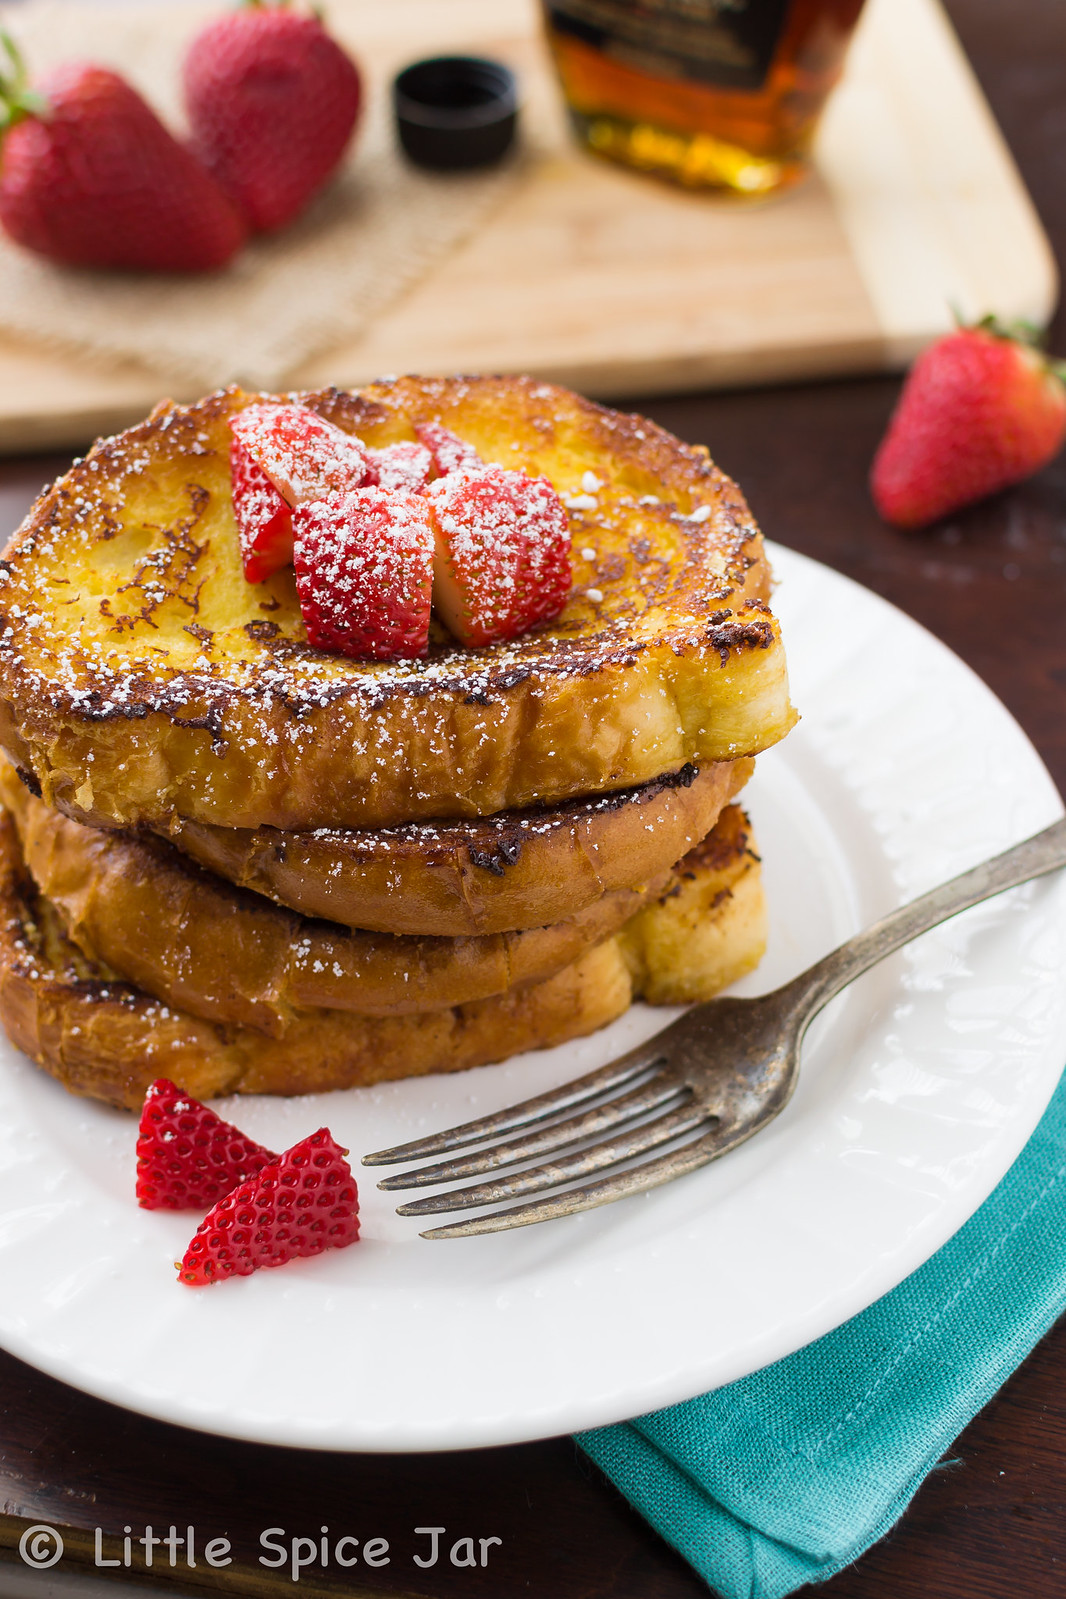 stack of French toast on white plate with fork and strawberries